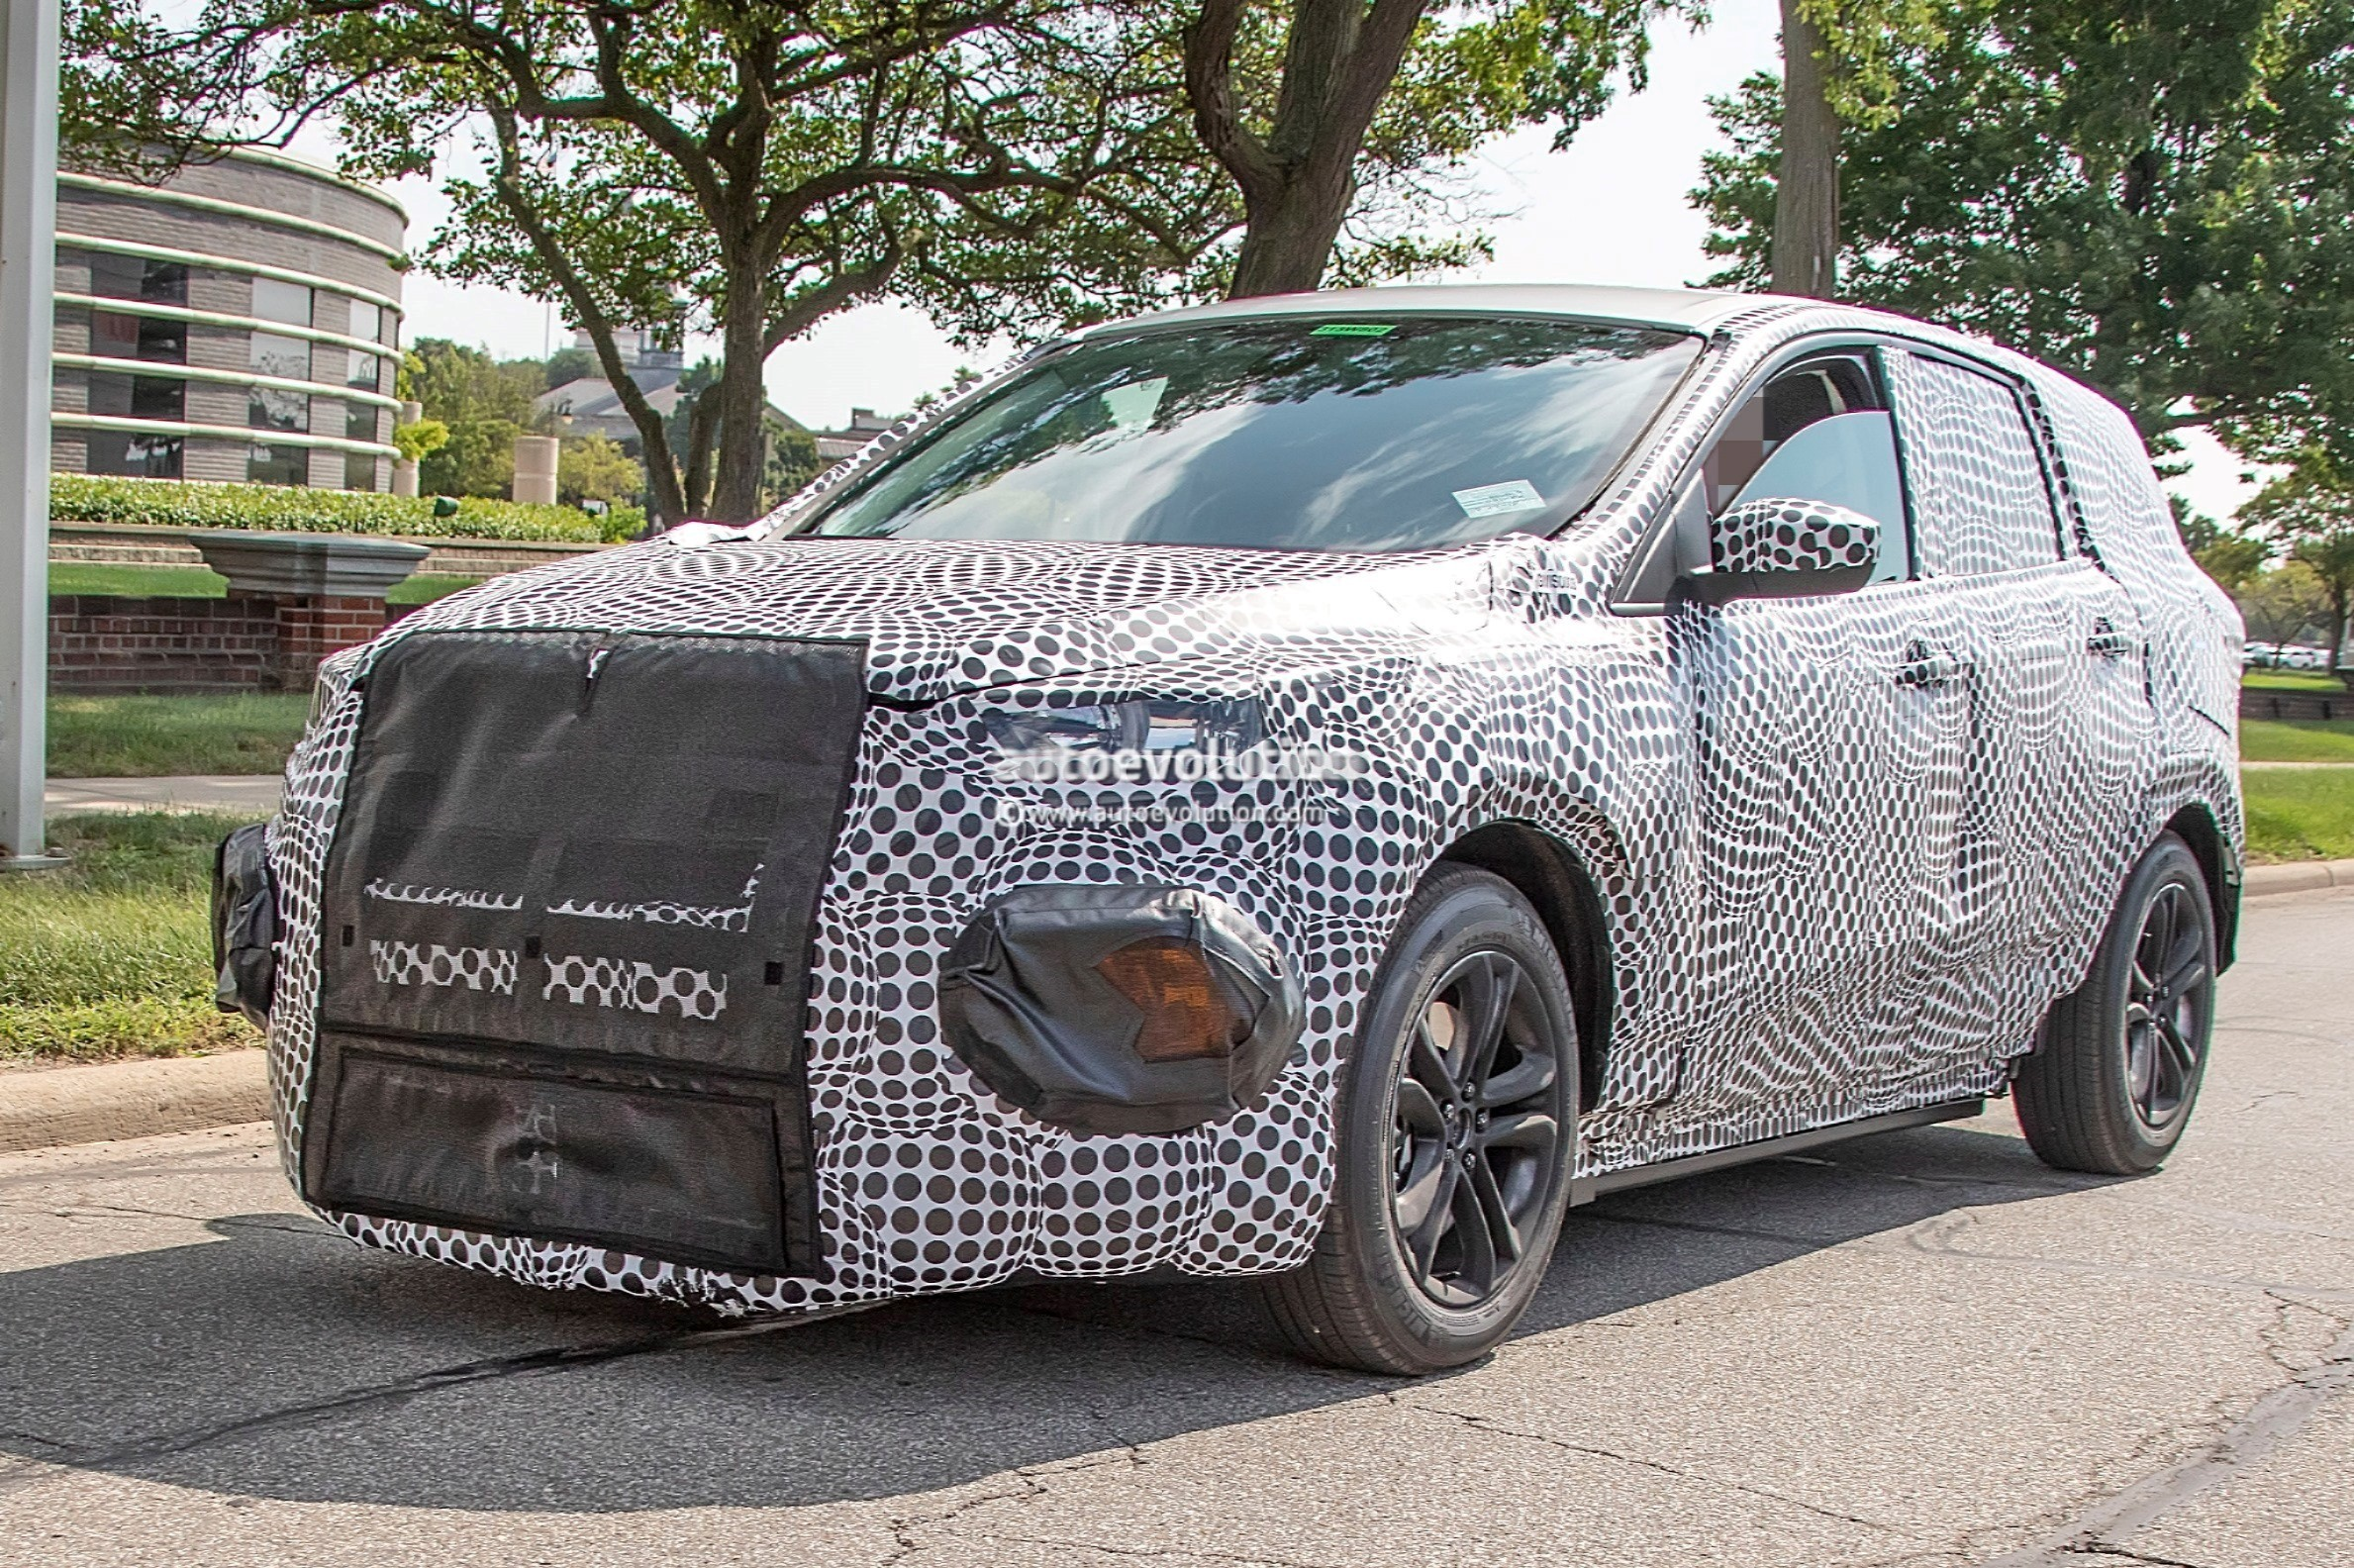 2020 Ford Mach 1 Electric SUV Spied For The First Time ...